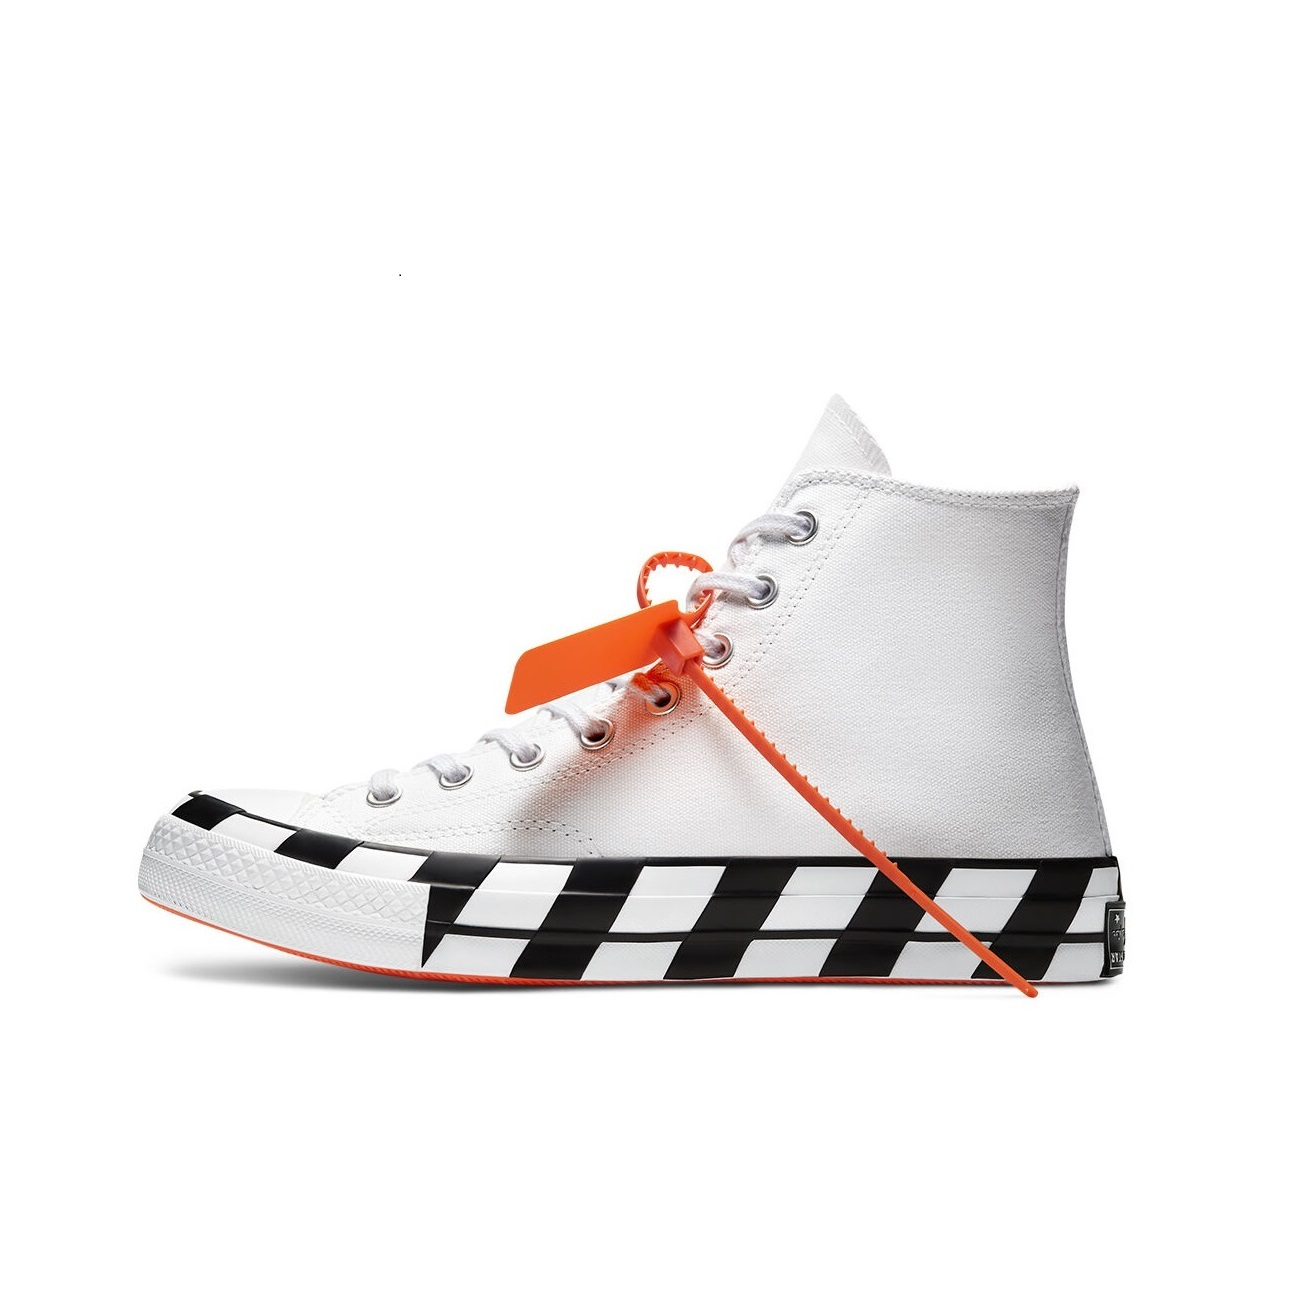 Off-White x Converse Chuck 70 High 'White Cone Black'}